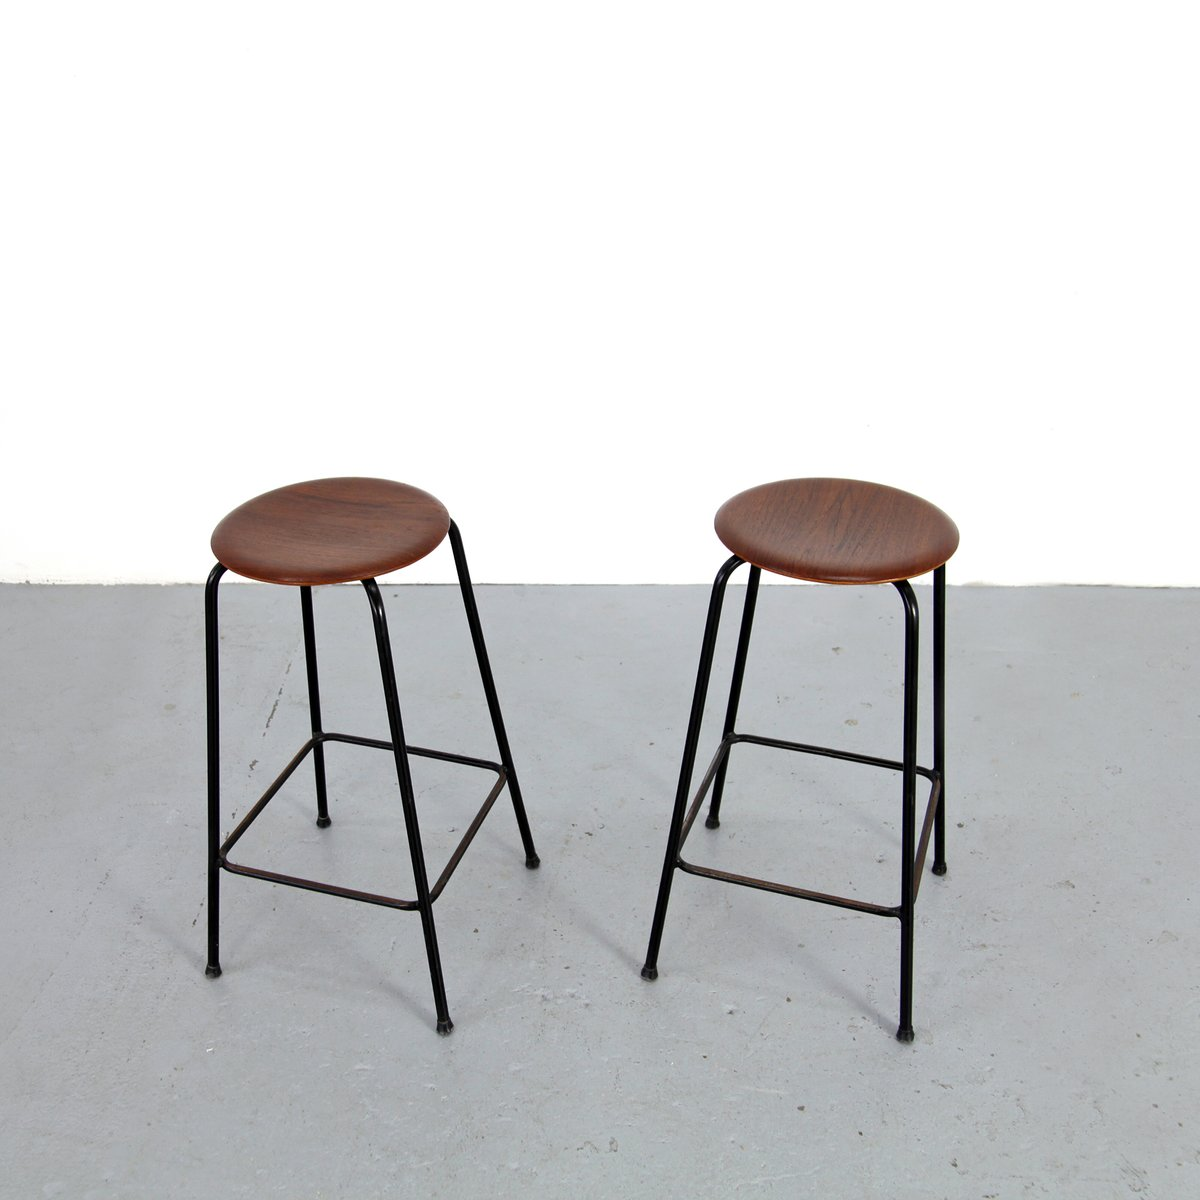 Danish Modern Teak Bar Stools From Duba Set Of 2 For Sale